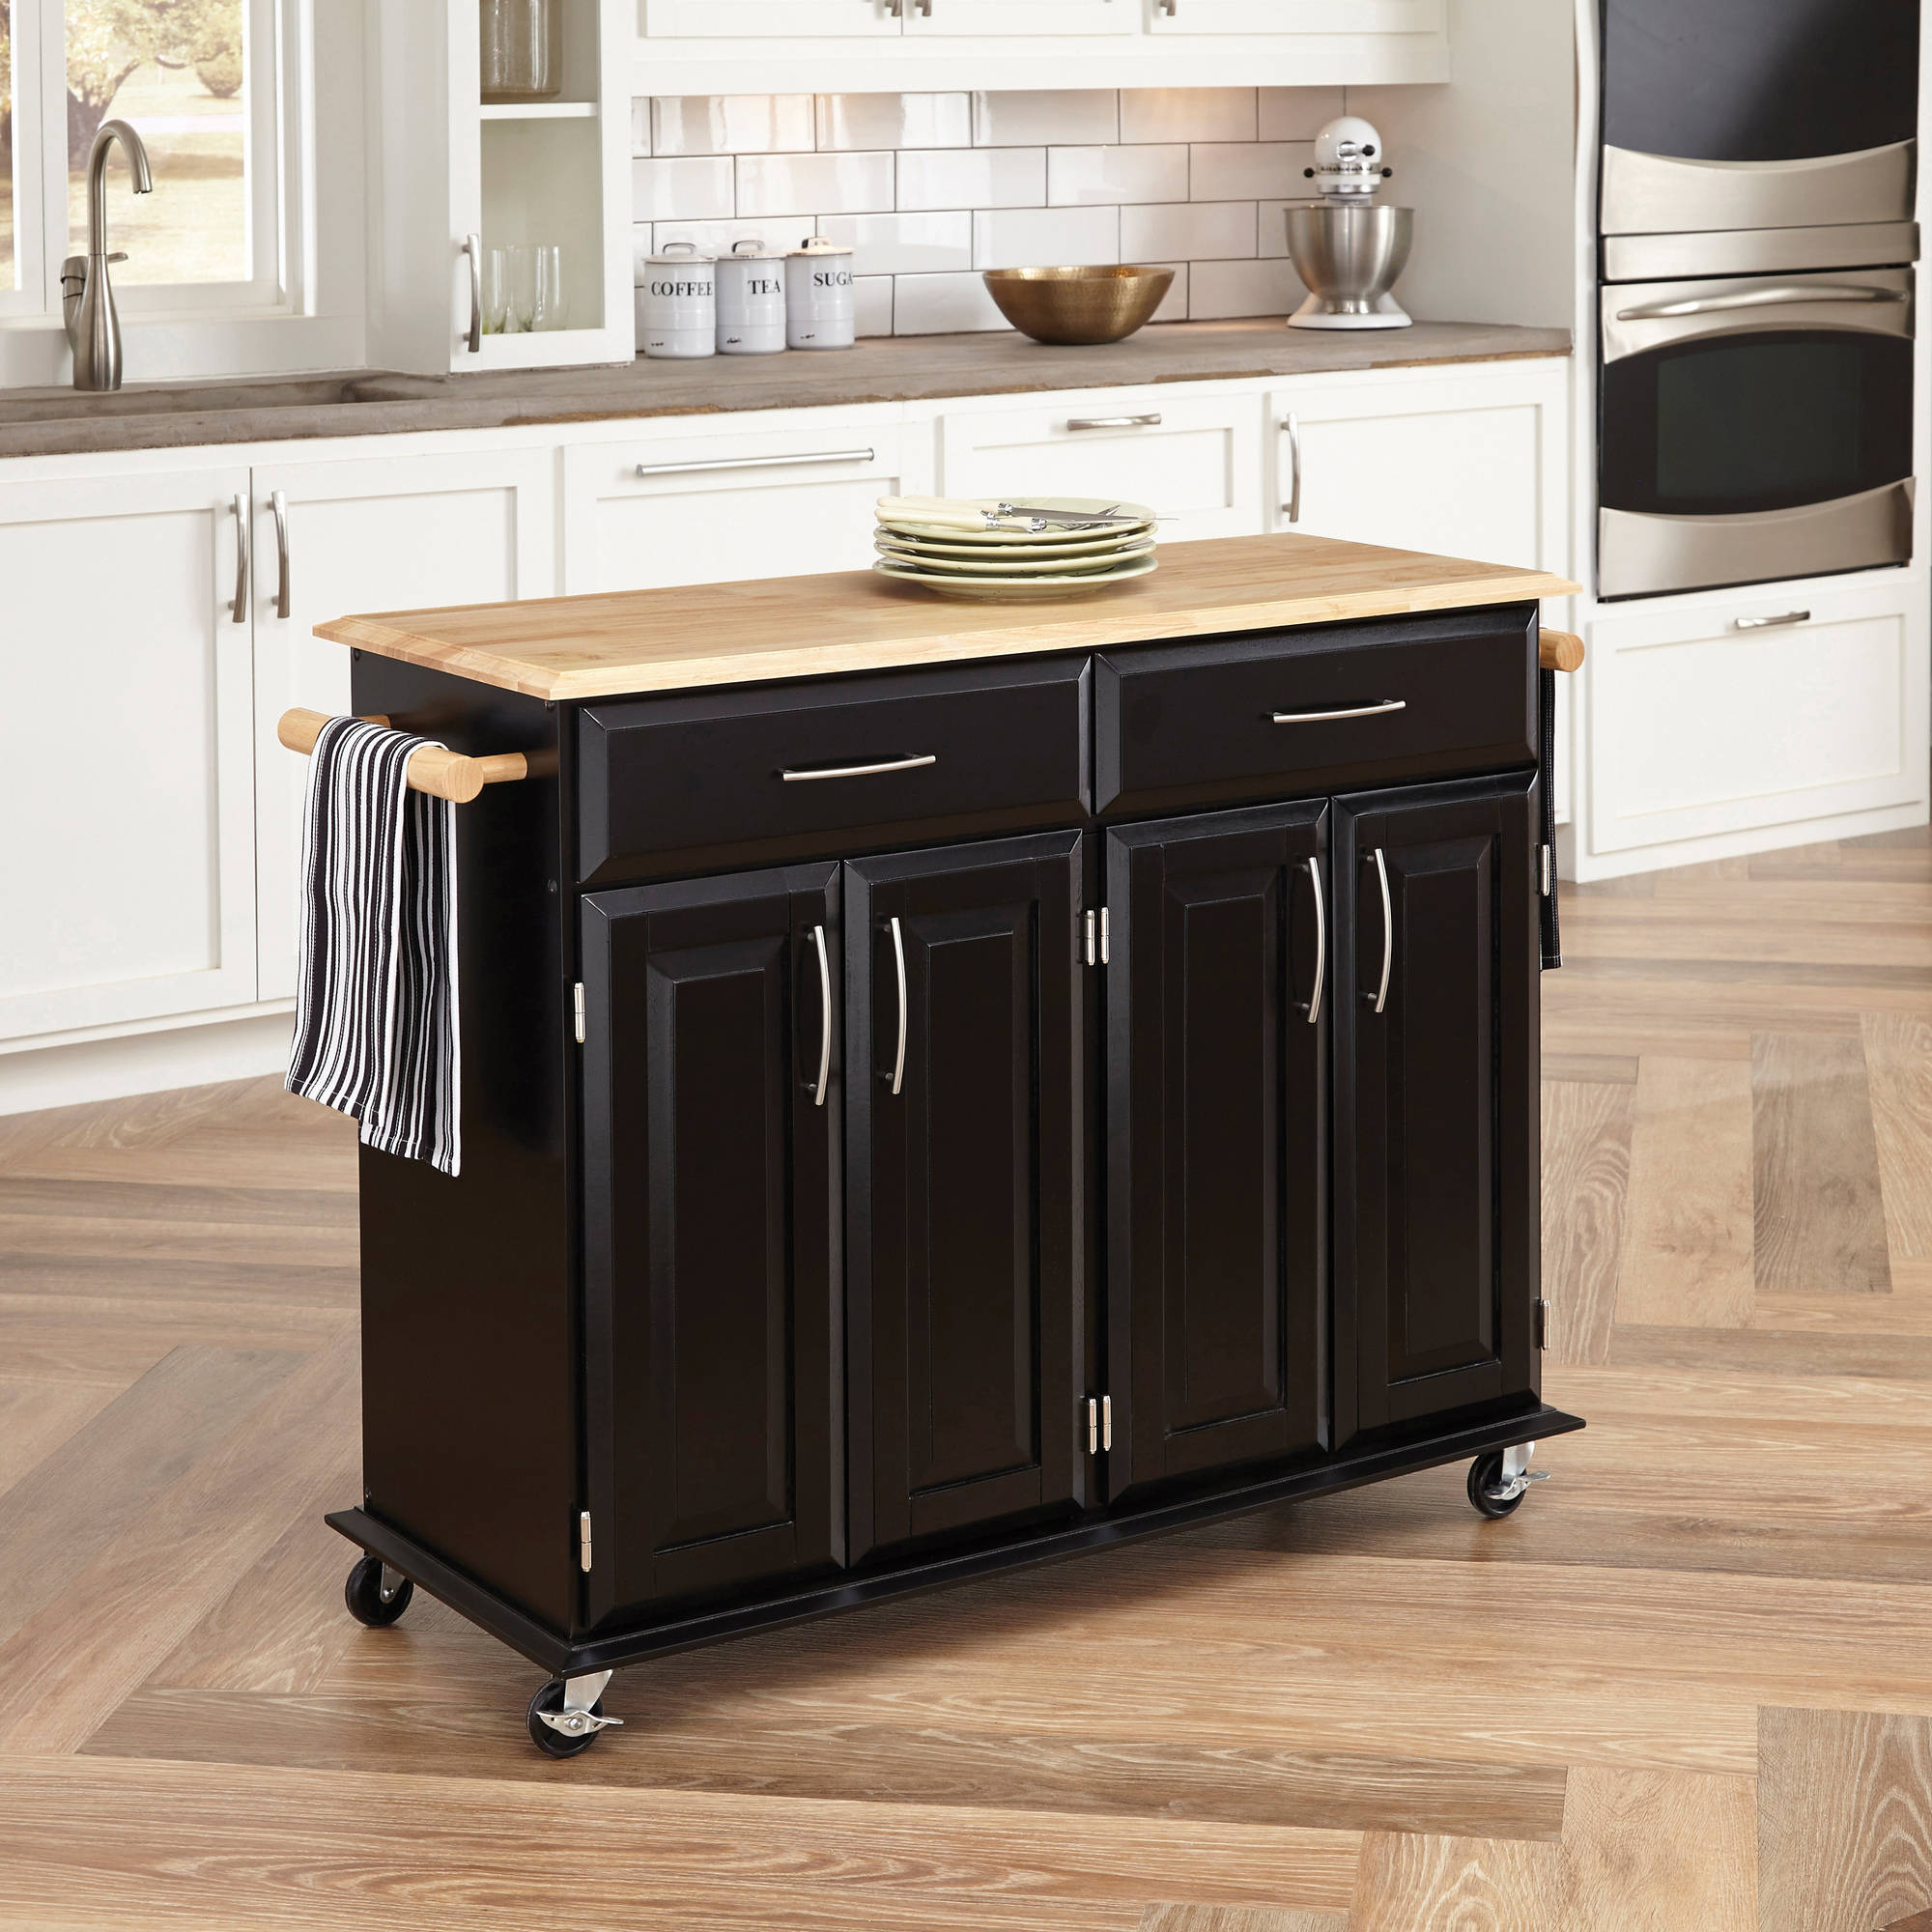 Home Styles Dolly Madison Black Island Cart - Walmart.com